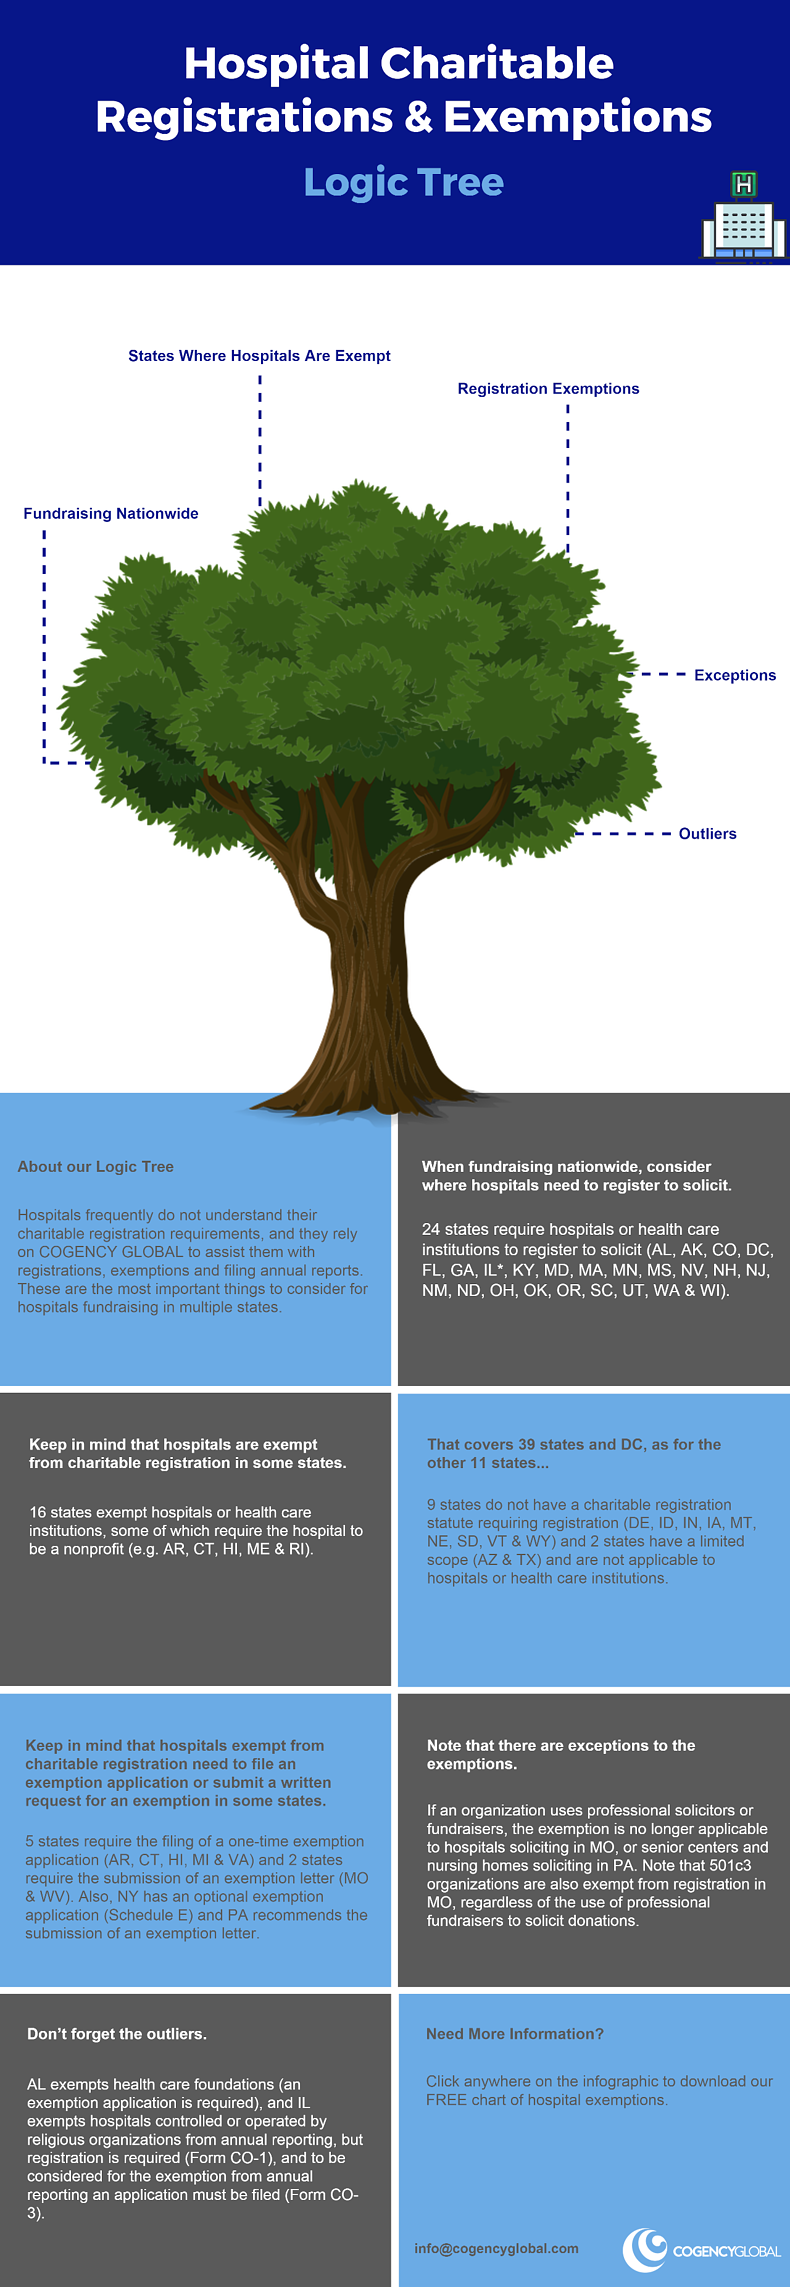 Hospital Charitable Registrations and Exemptions Logic Tree_FINAL.png